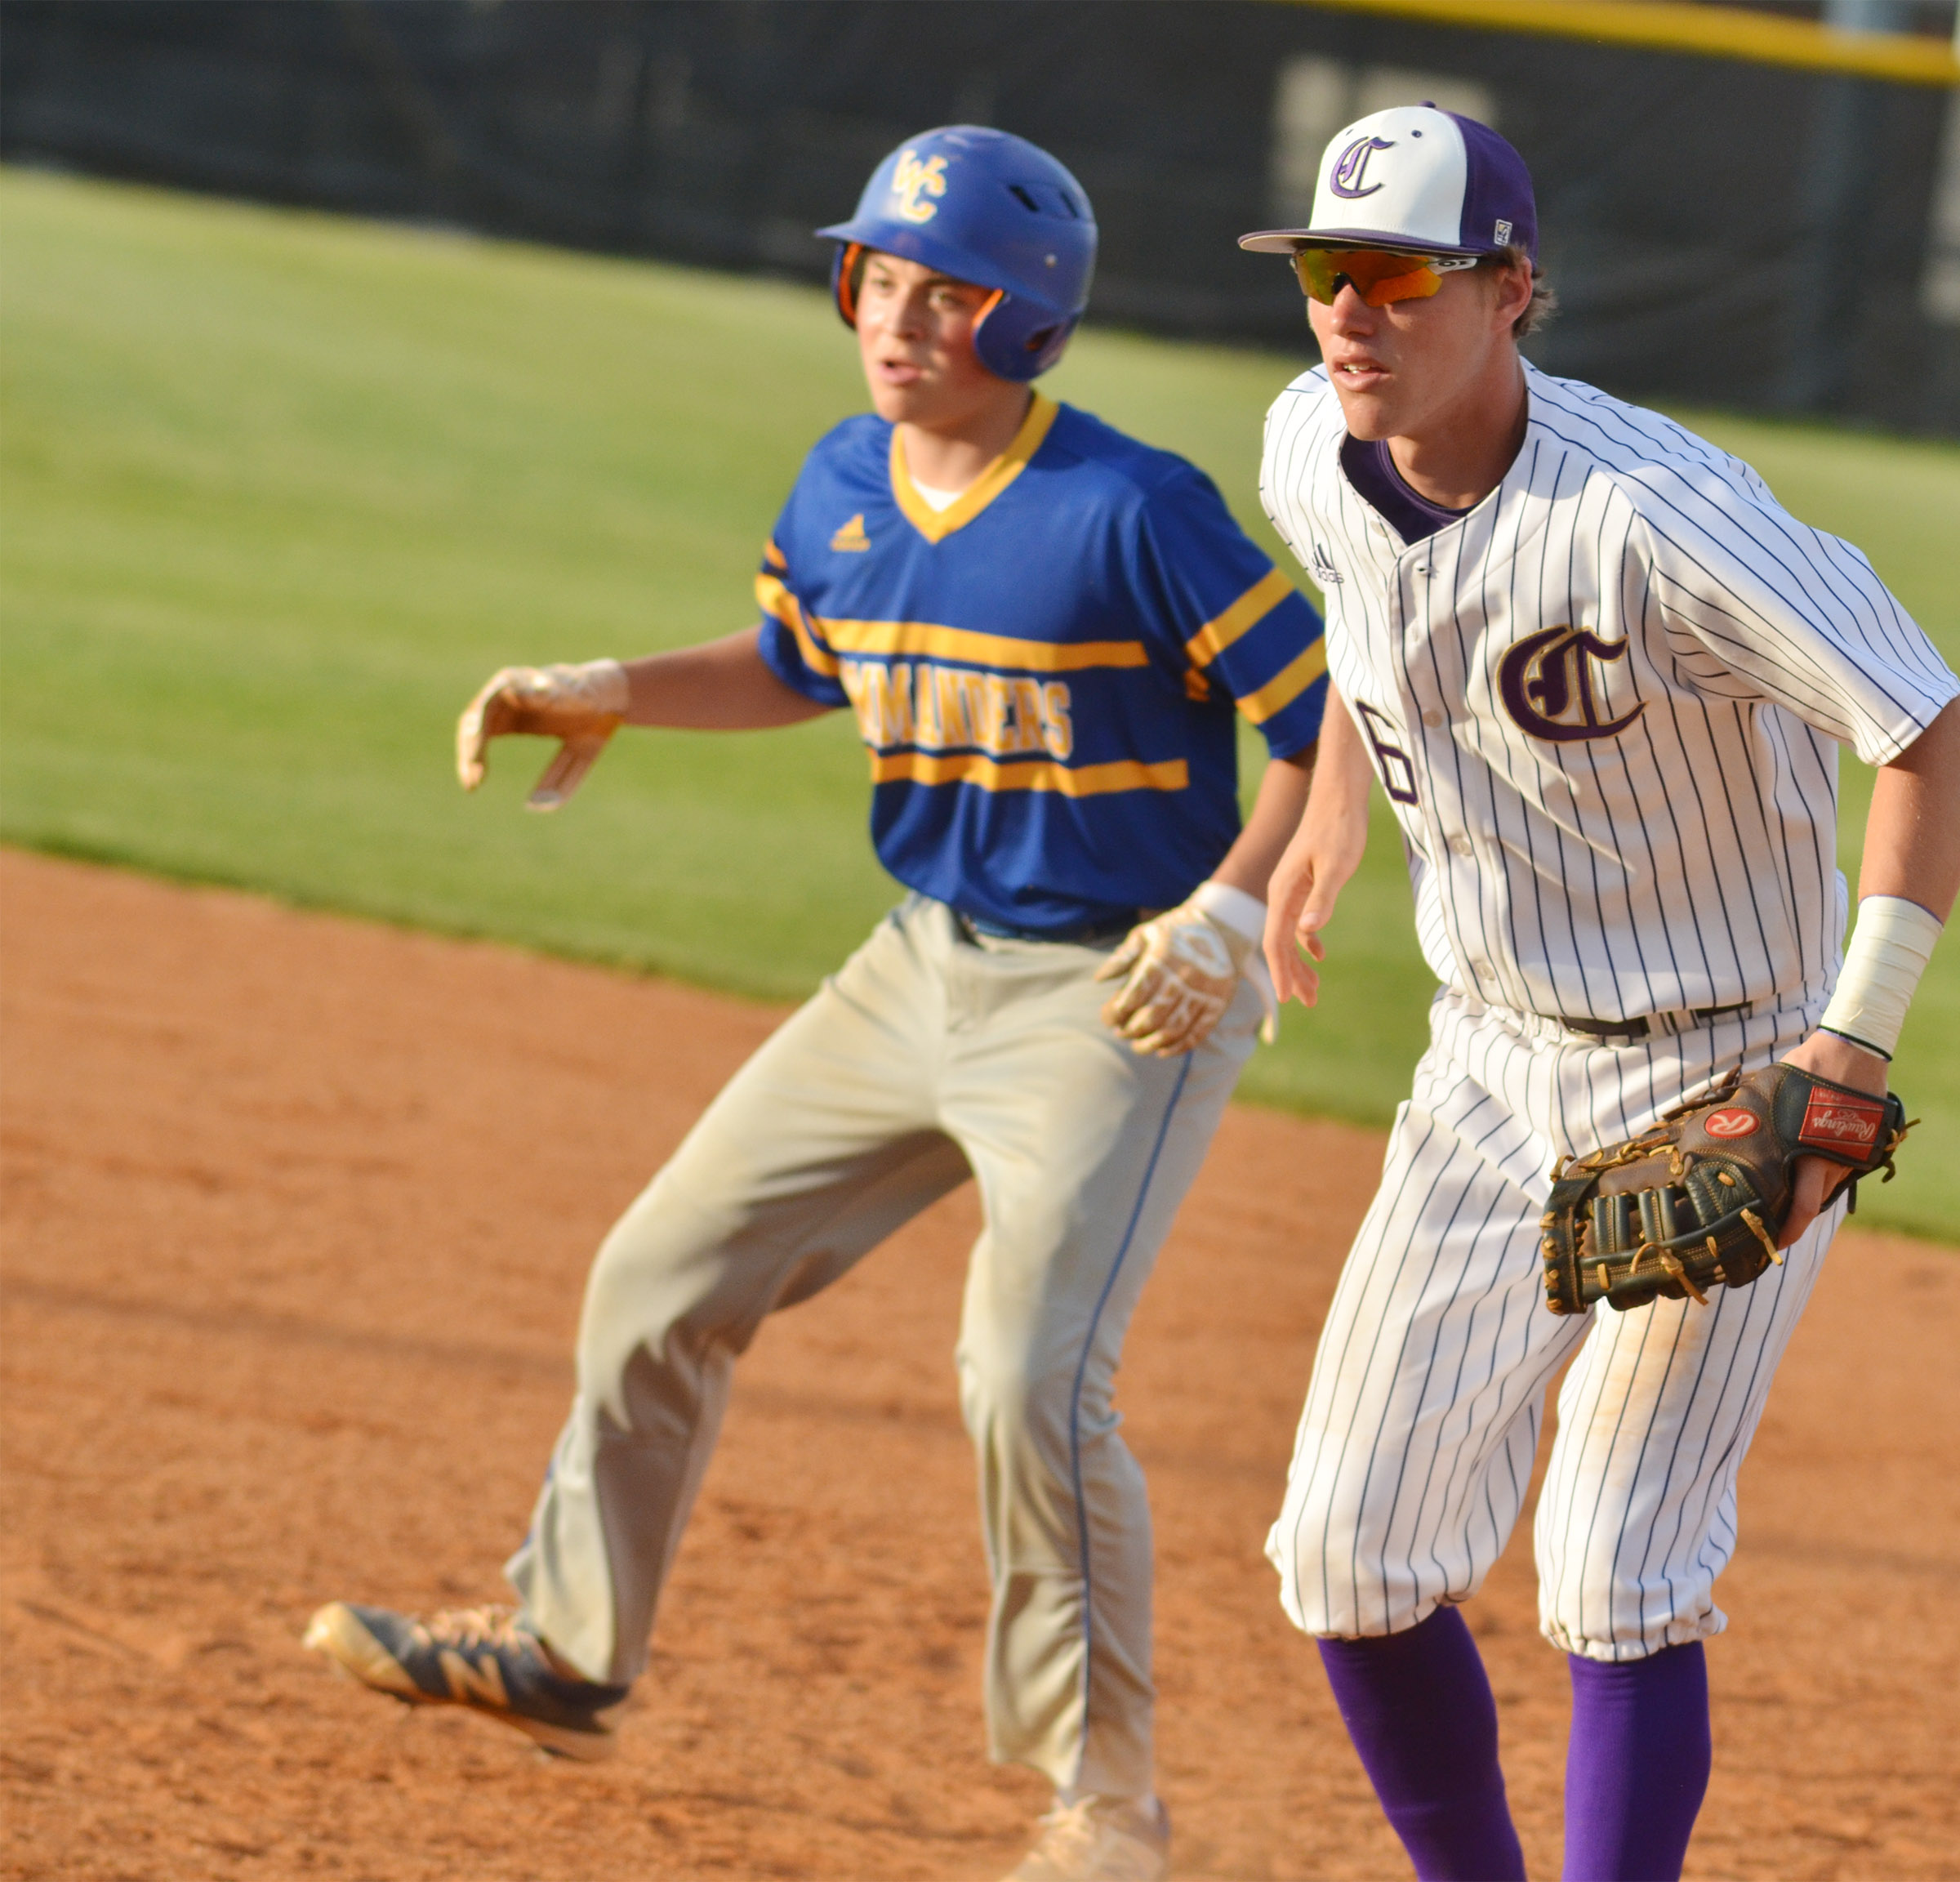 CHS senior Zack Bottoms keeps the runner close at first.